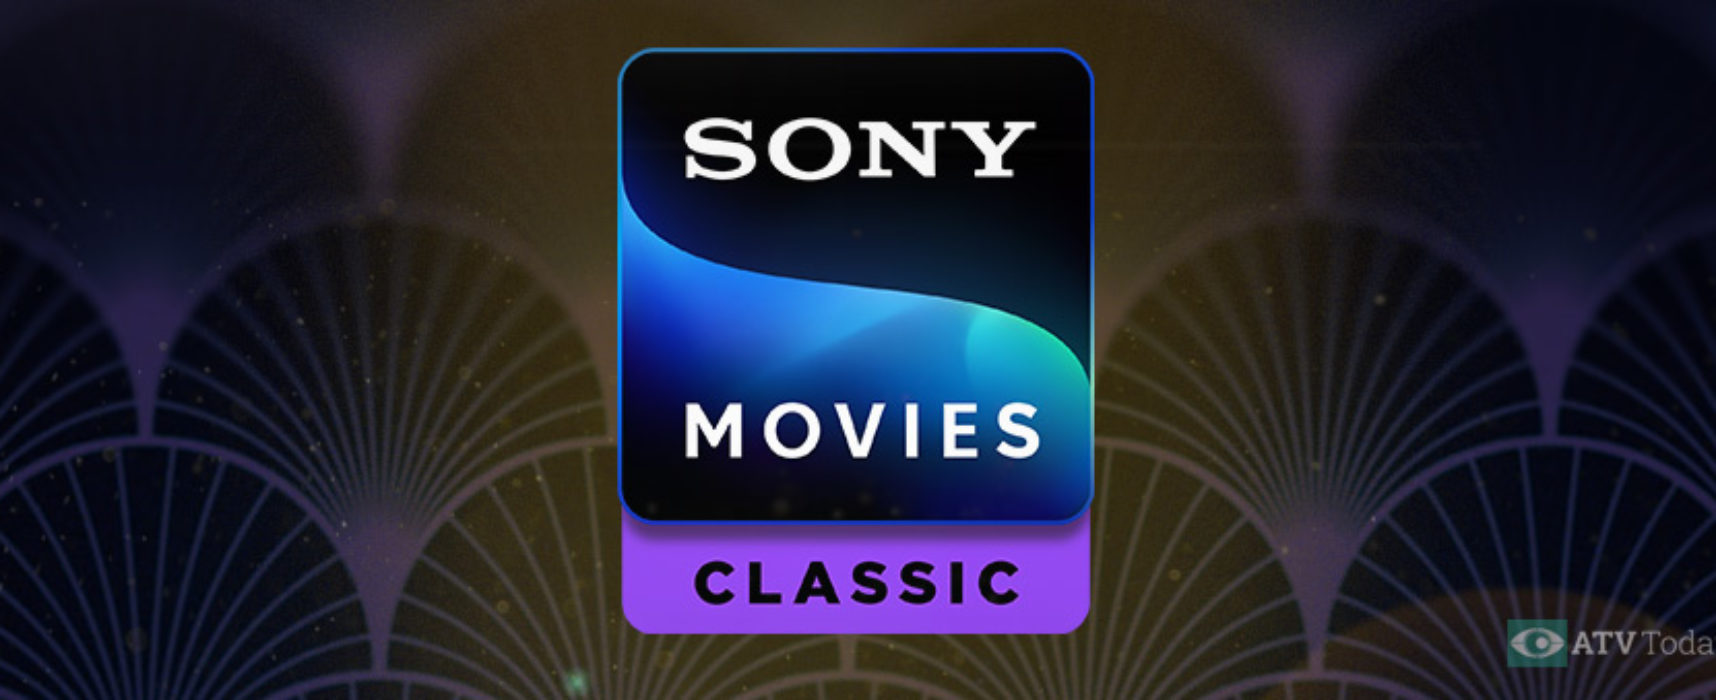 Classic Movie channel to be launched by Sony